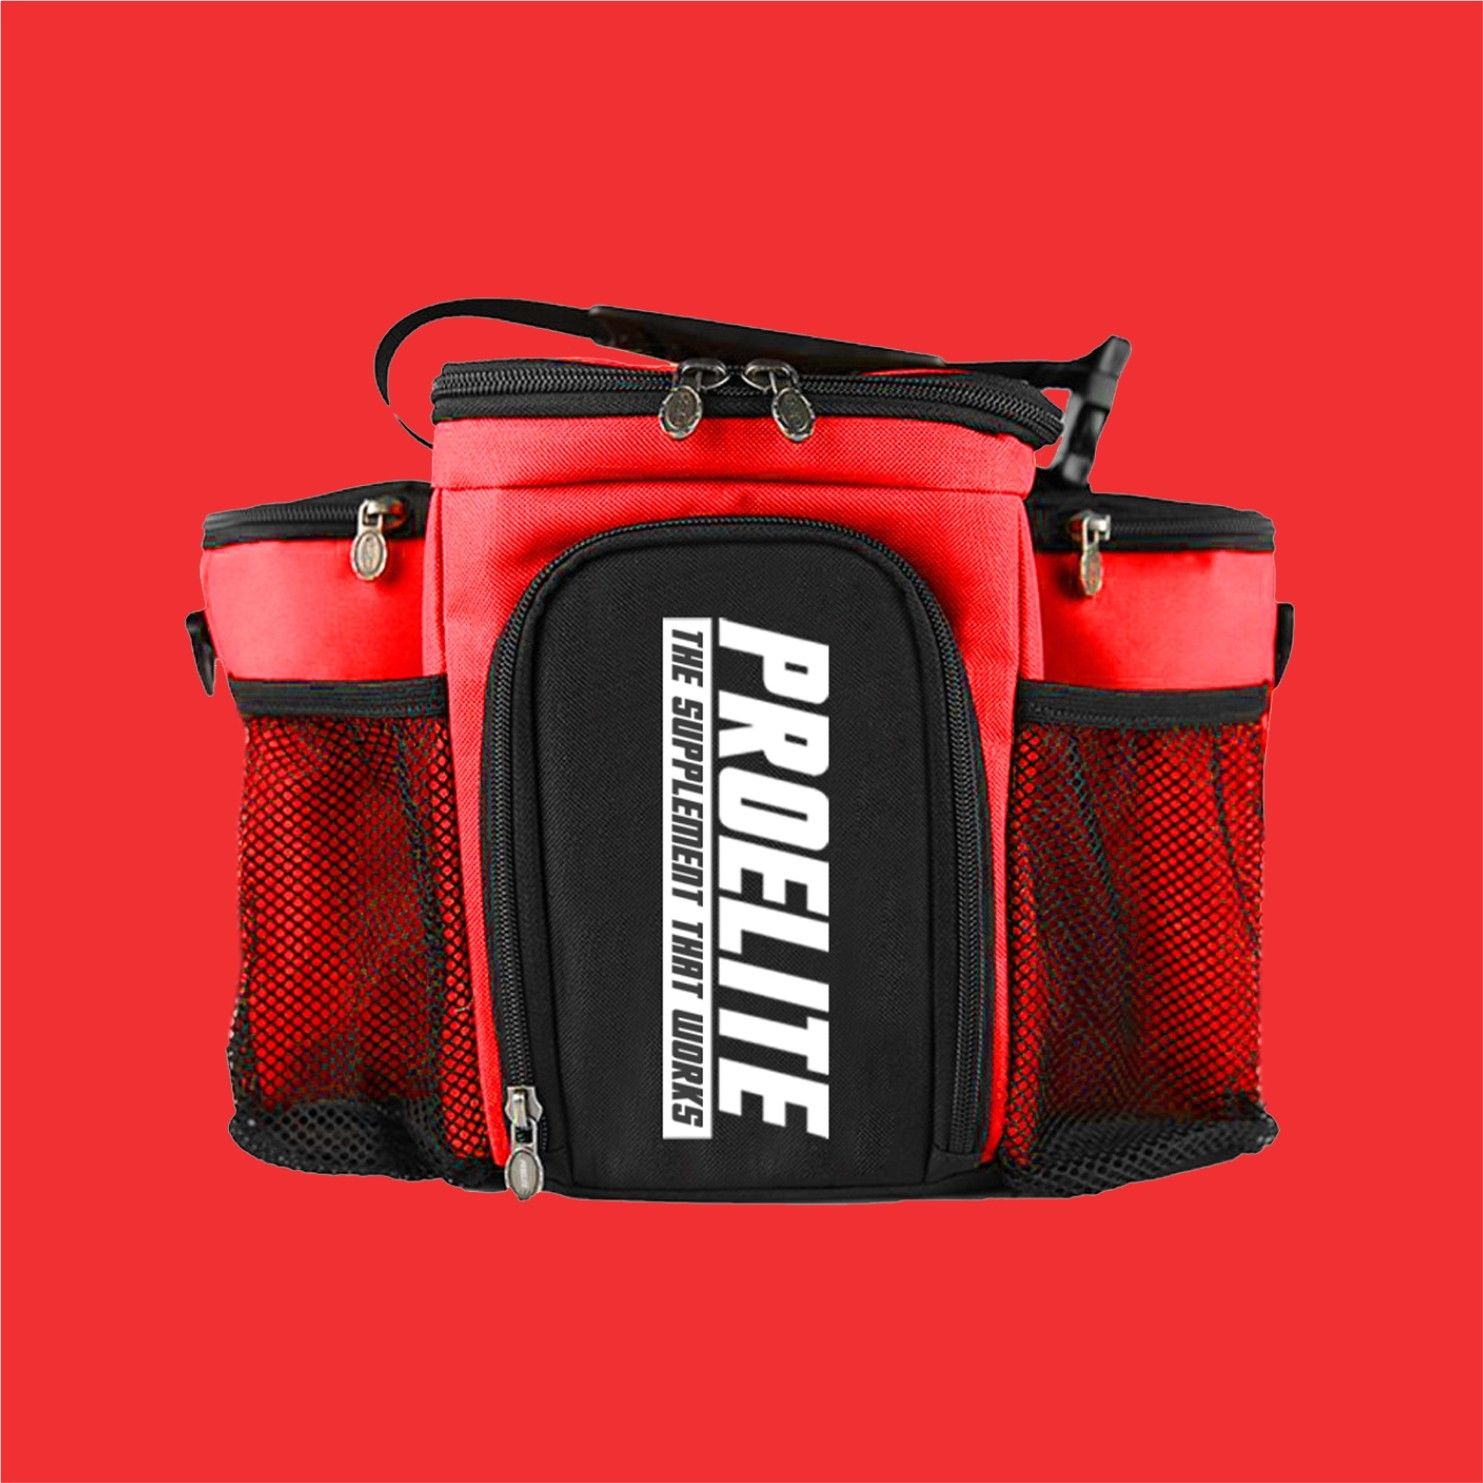 419e501be8d2 3 Meal Bag Food Prep Management Insulated Fitness Gym Cooler Lunch ...